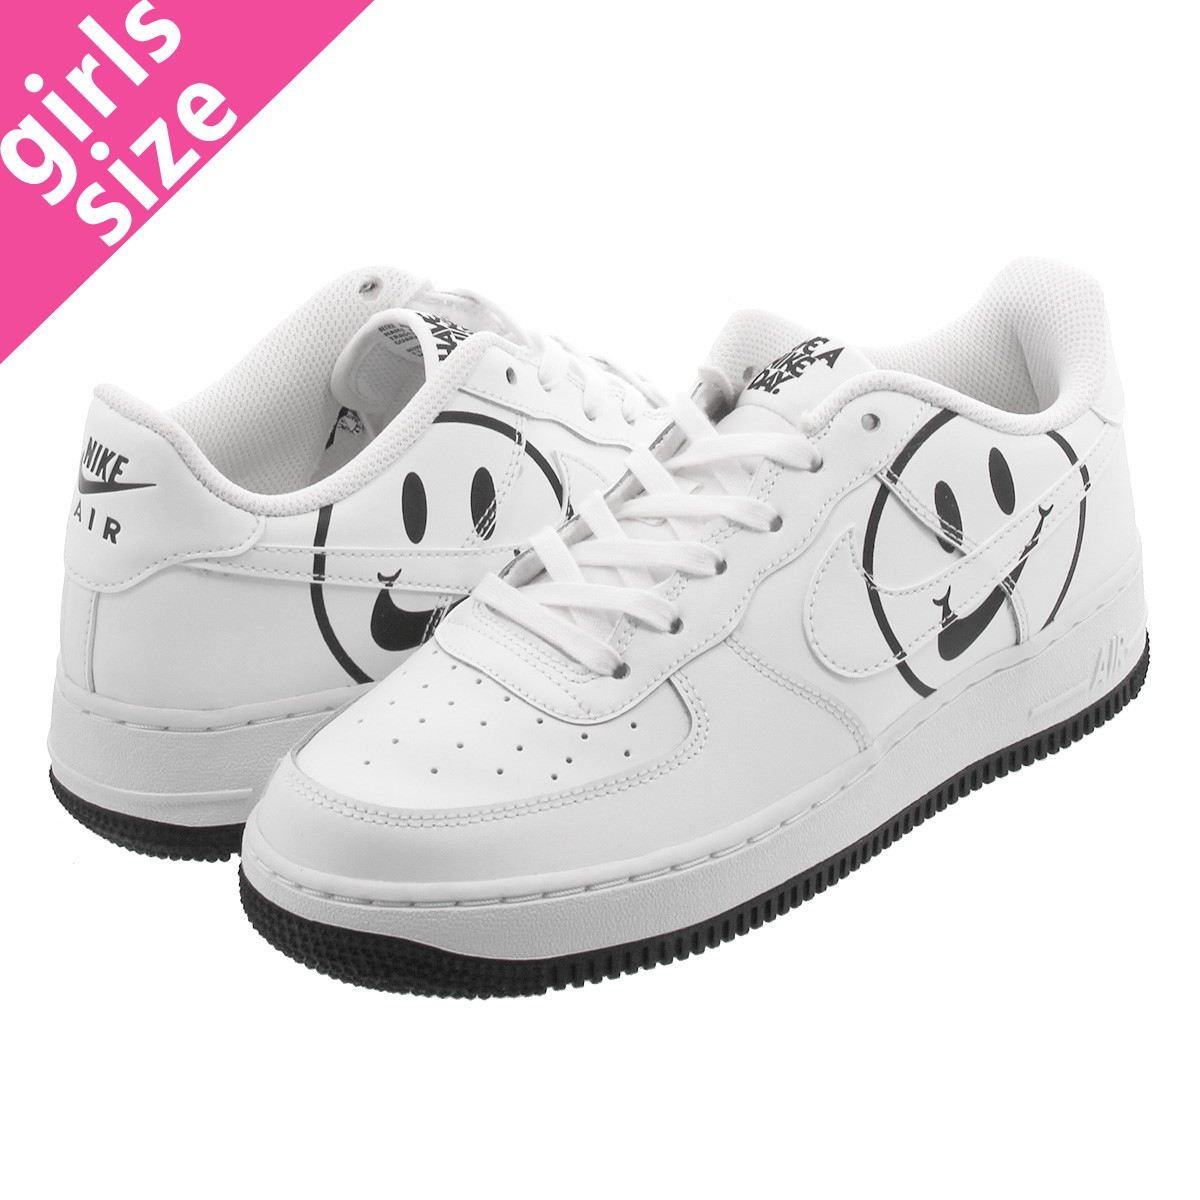 best service f733e 0cca8 NIKE AIR FORCE 1 LV8 2 GS Nike air force 1 LV8 2 GS WHITE  ...